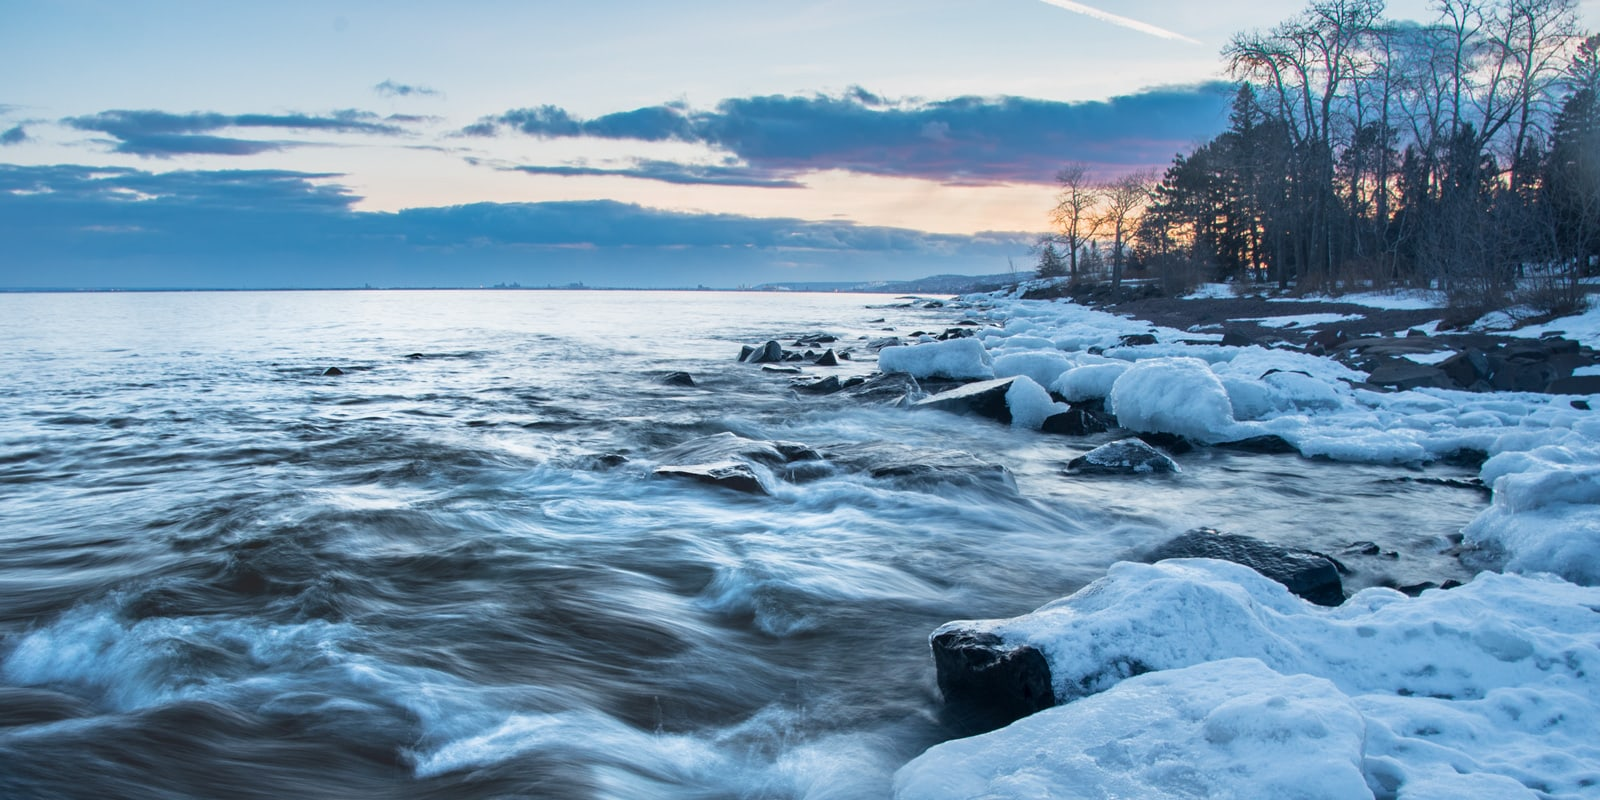 Brighton Beach at Sunrise - Duluth